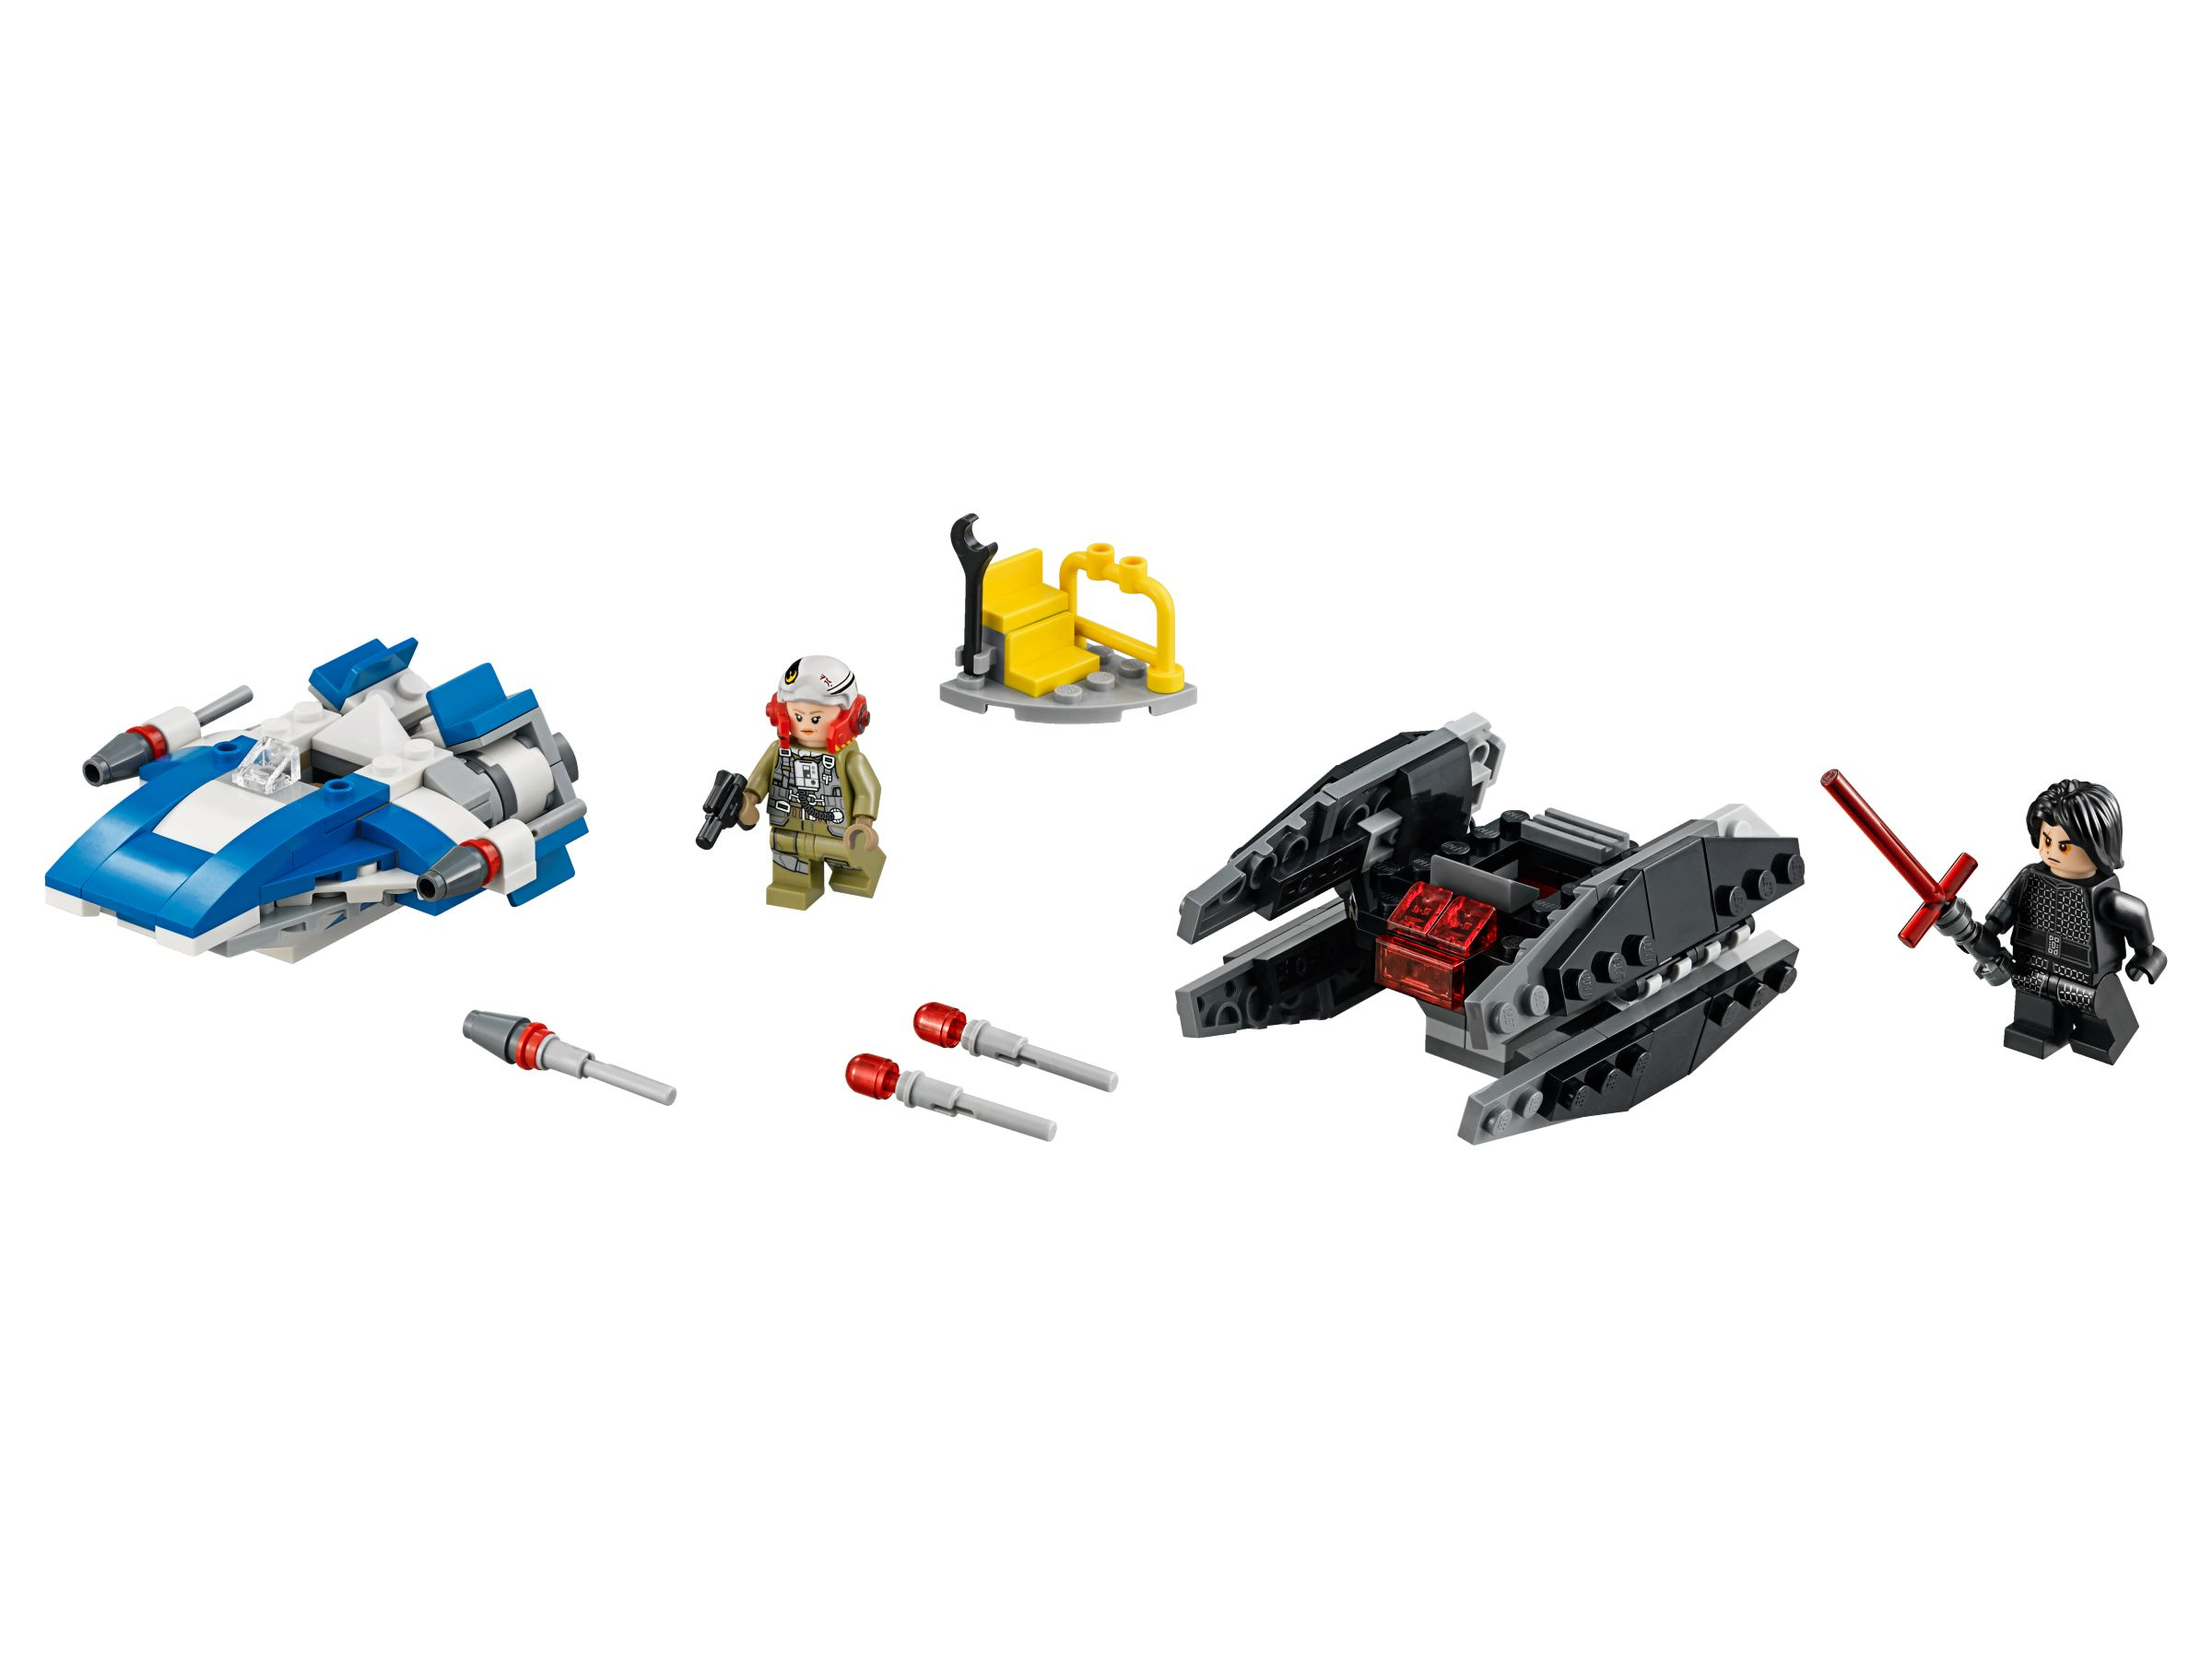 LEGO Star Wars 75196 A-Wing™ vs. TIE Silencer™ Microfighters